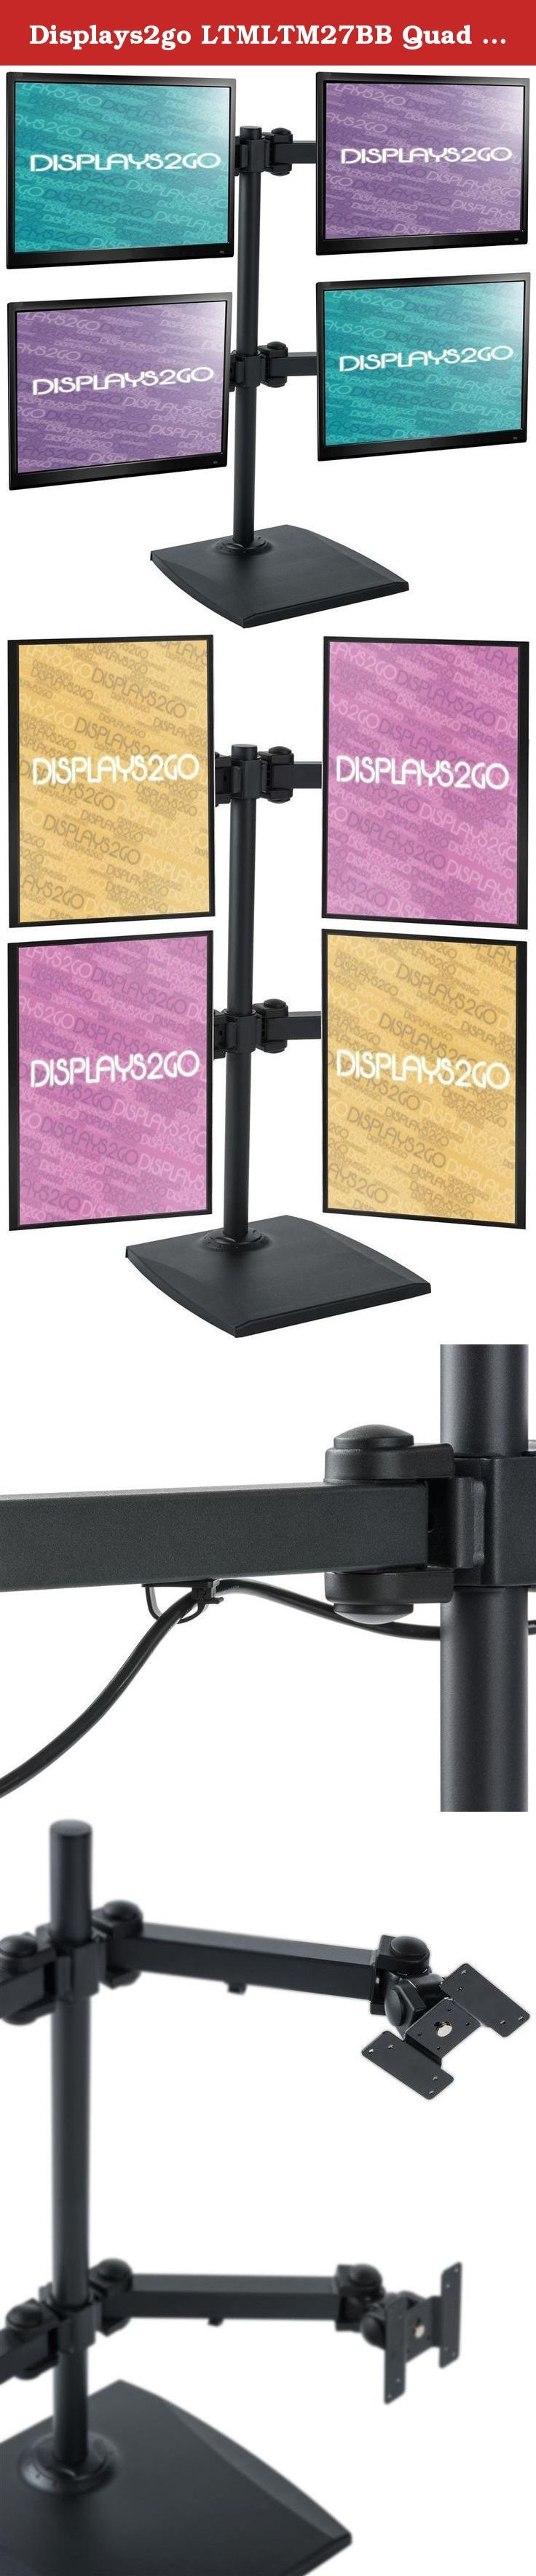 """Displays2go LTMLTM27BB Quad Desktop Monitor Stand for 10-24"""" Screens, Height Adjustable, Tilting. This quad monitor stand for desktop fits (4) 10"""" x 24"""" screens, up to 13 lbs. each. The screens rotate (landscape or portrait orientation), tilt (up and down), and swivel. The stand is perfect to save space in your office or home. The stand accommodates flat panel screens with 75 x 75 and 100 x 100 VESA standards."""